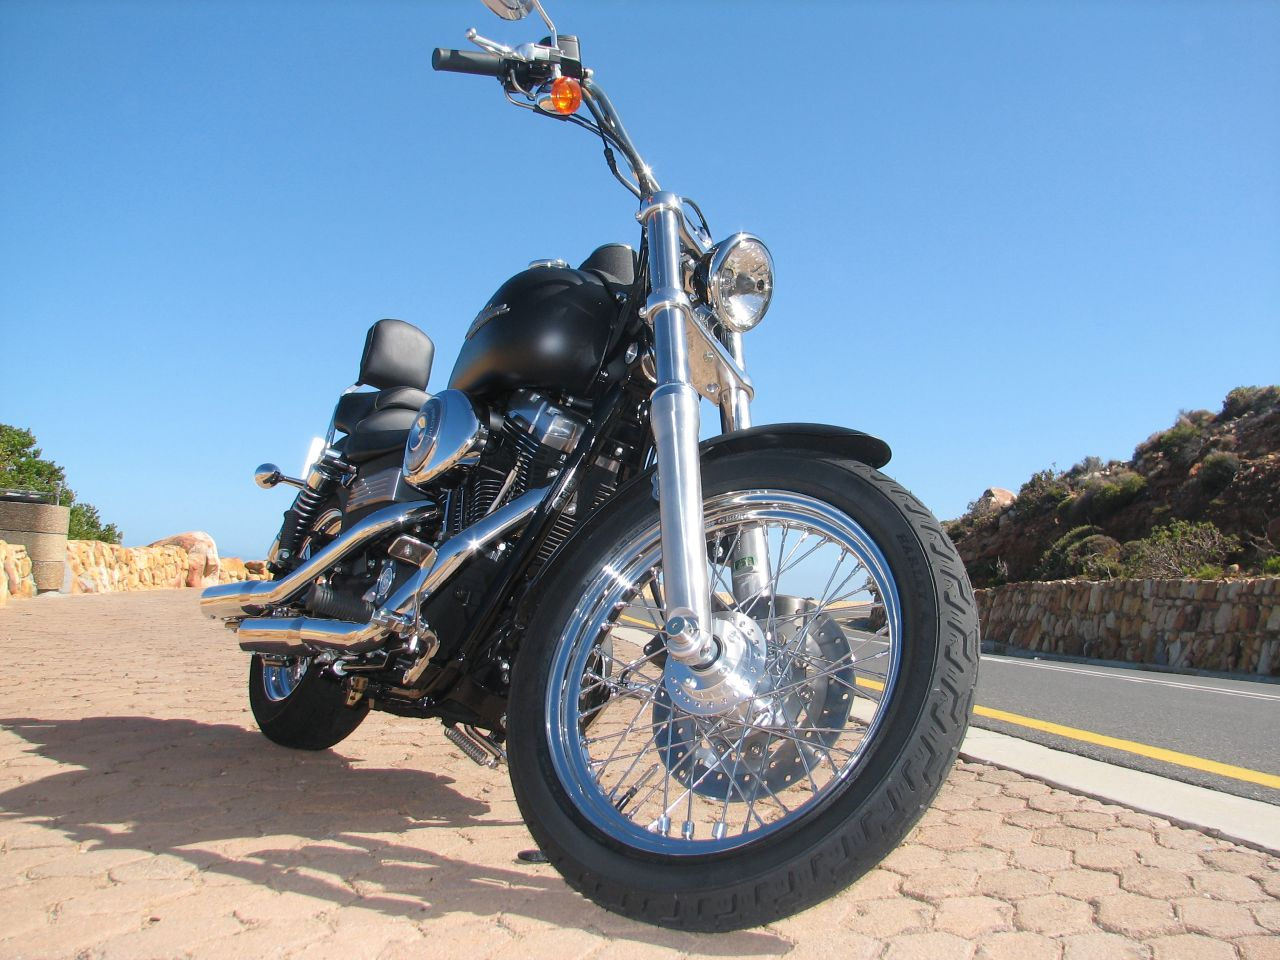 Allstate Motorcycle Insurance Quote Allstate Motorcycle Insurance Quote Mesmerizing Online Motorcycle